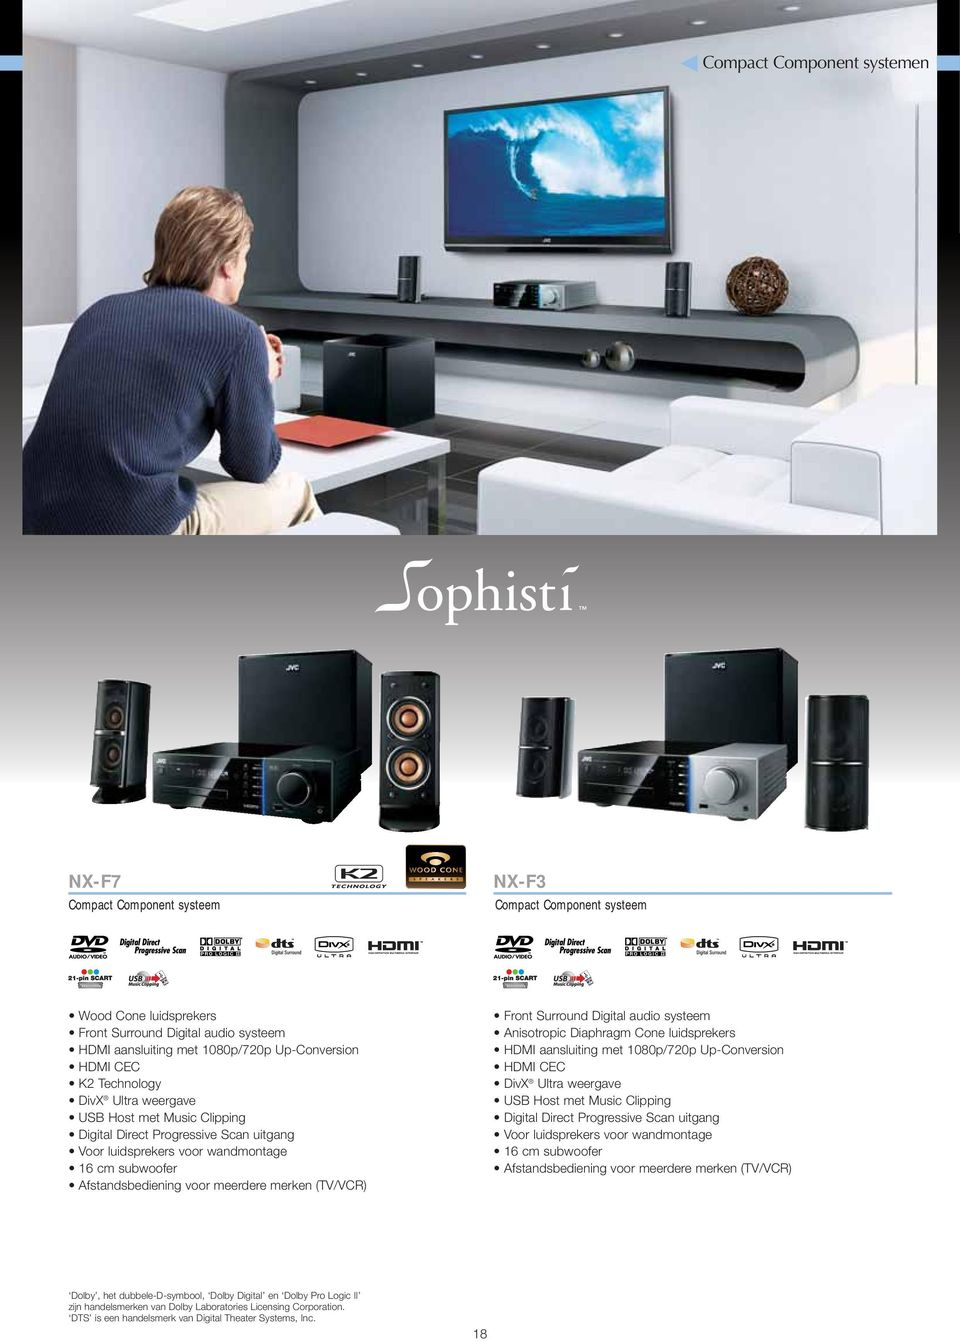 merken (TV/VCR) Front Surround Digital audio systeem Anisotropic Diaphragm Cone luidsprekers HDMI aansluiting met 1080p/720p Up-Conversion HDMI CEC DivX Ultra weergave USB Host met Music Clipping